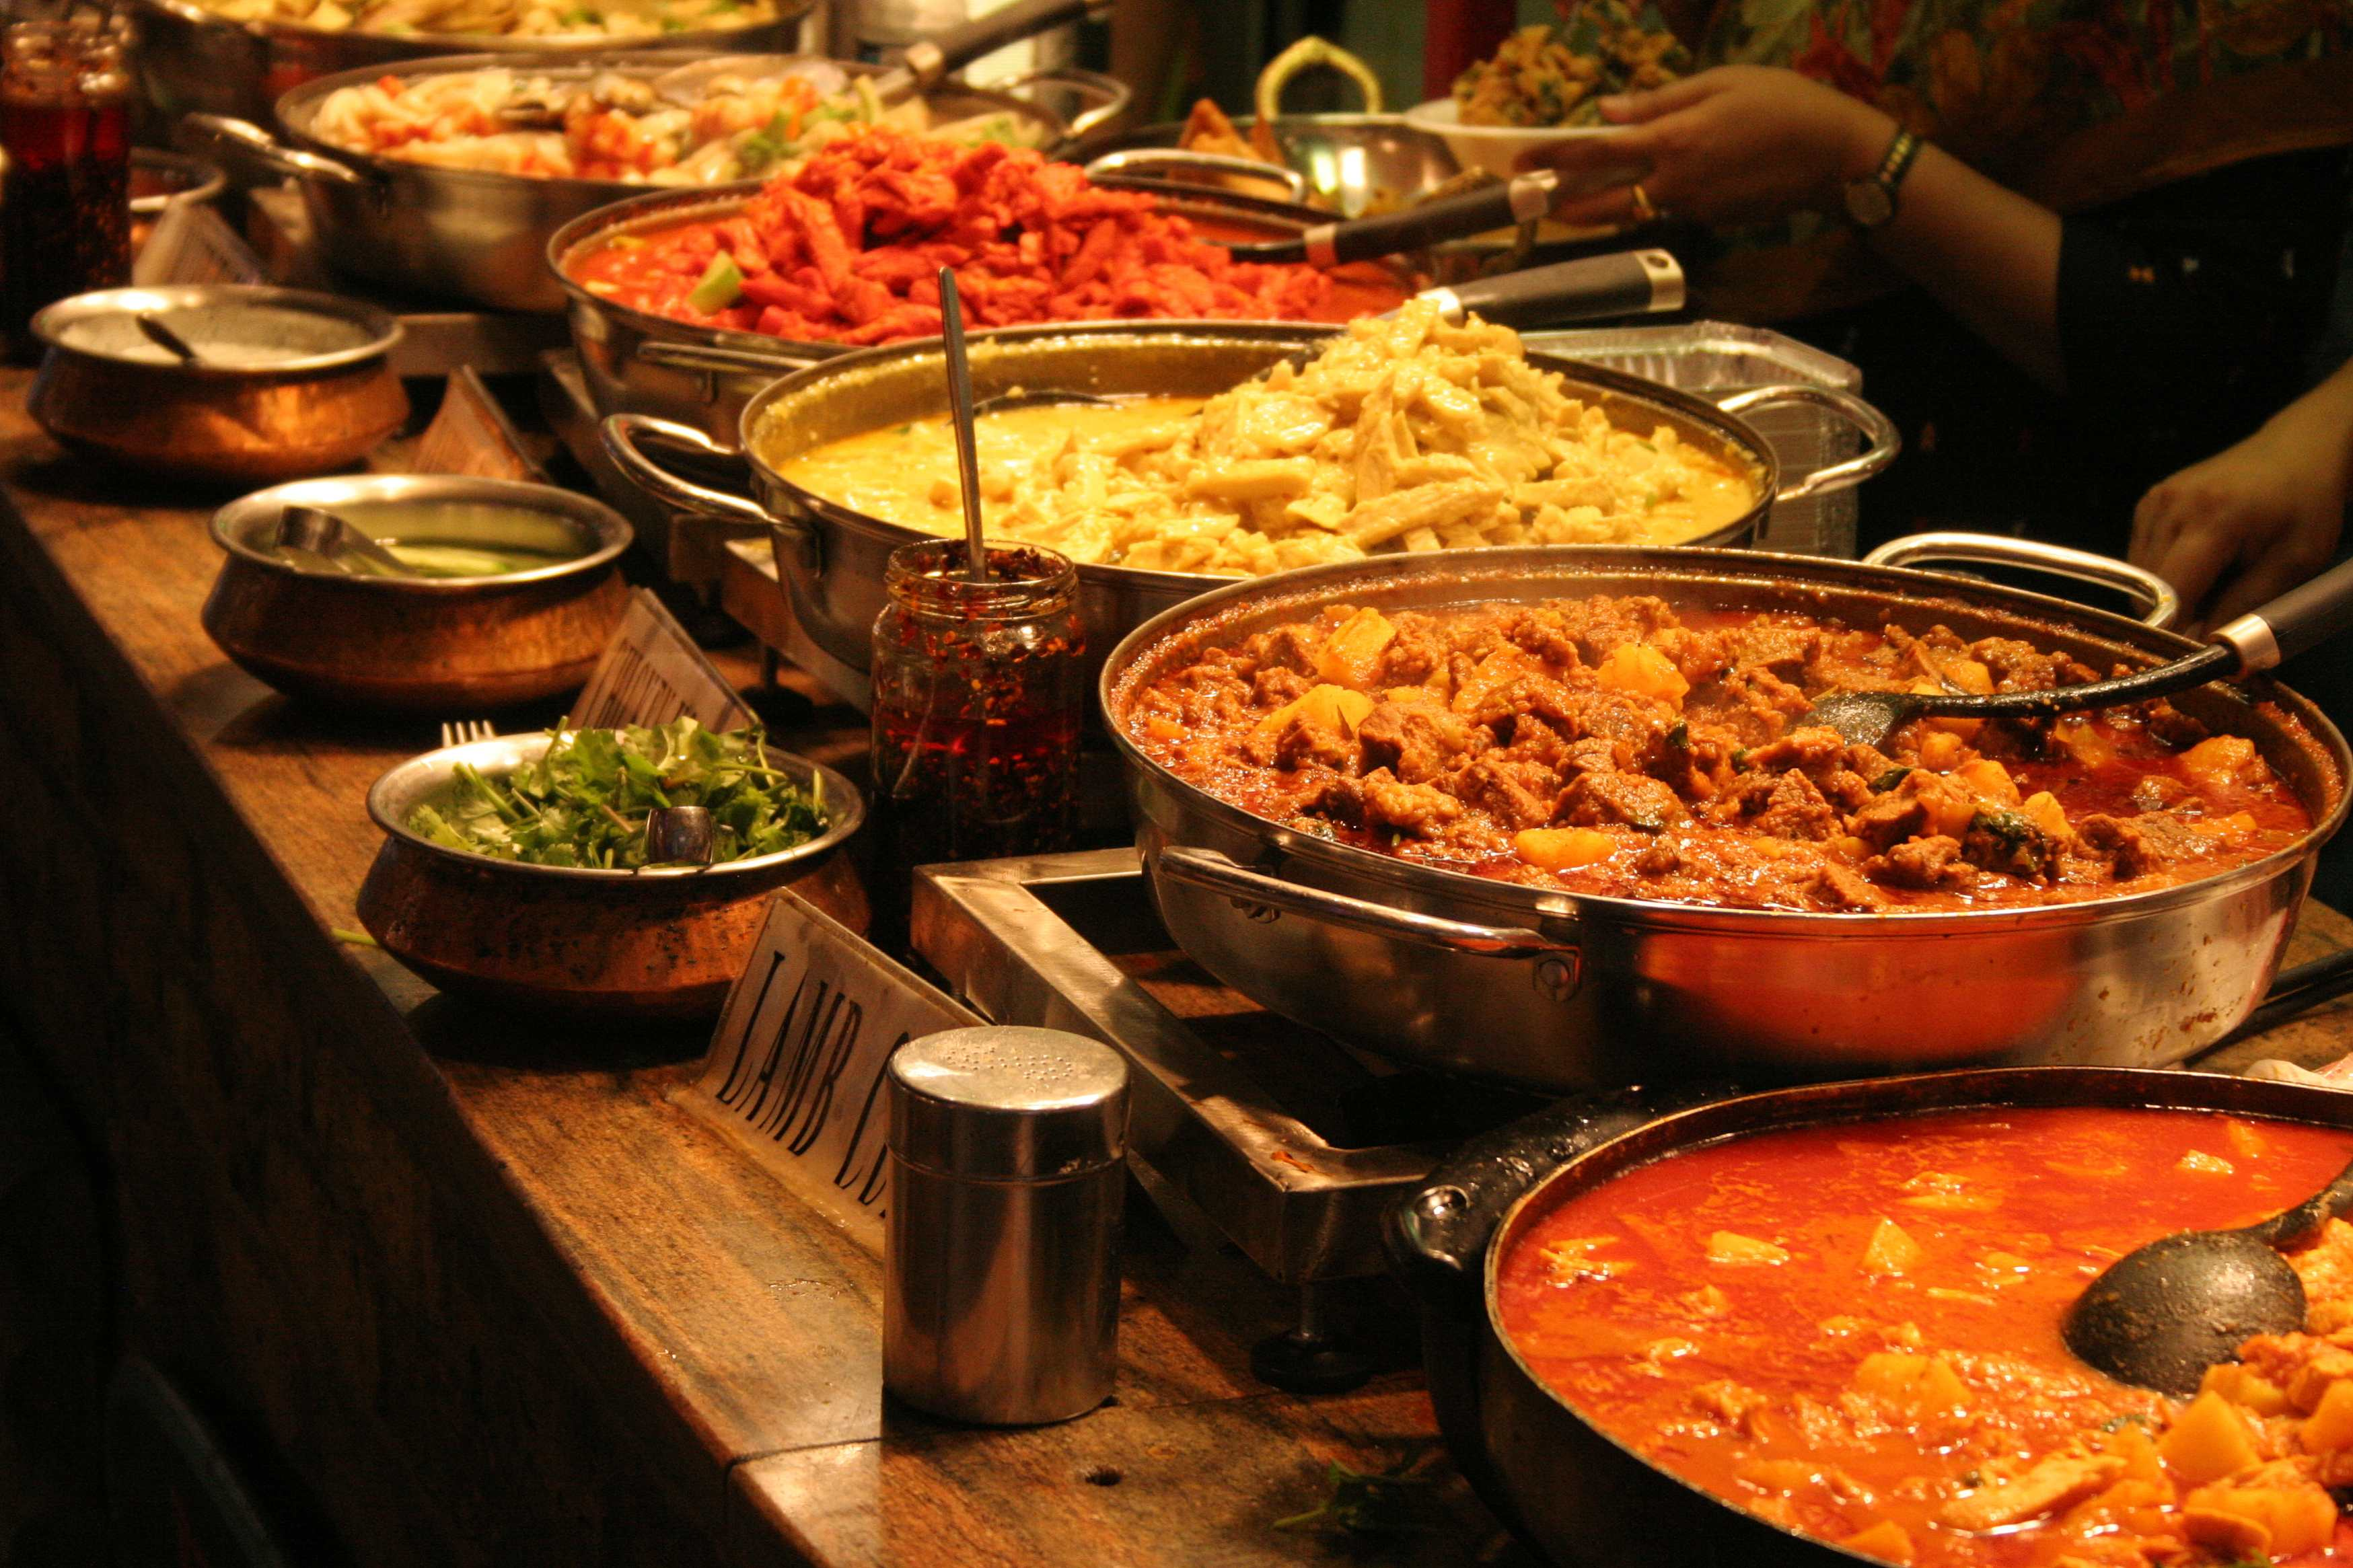 Taste Of India Cuisine From The Heart Of India